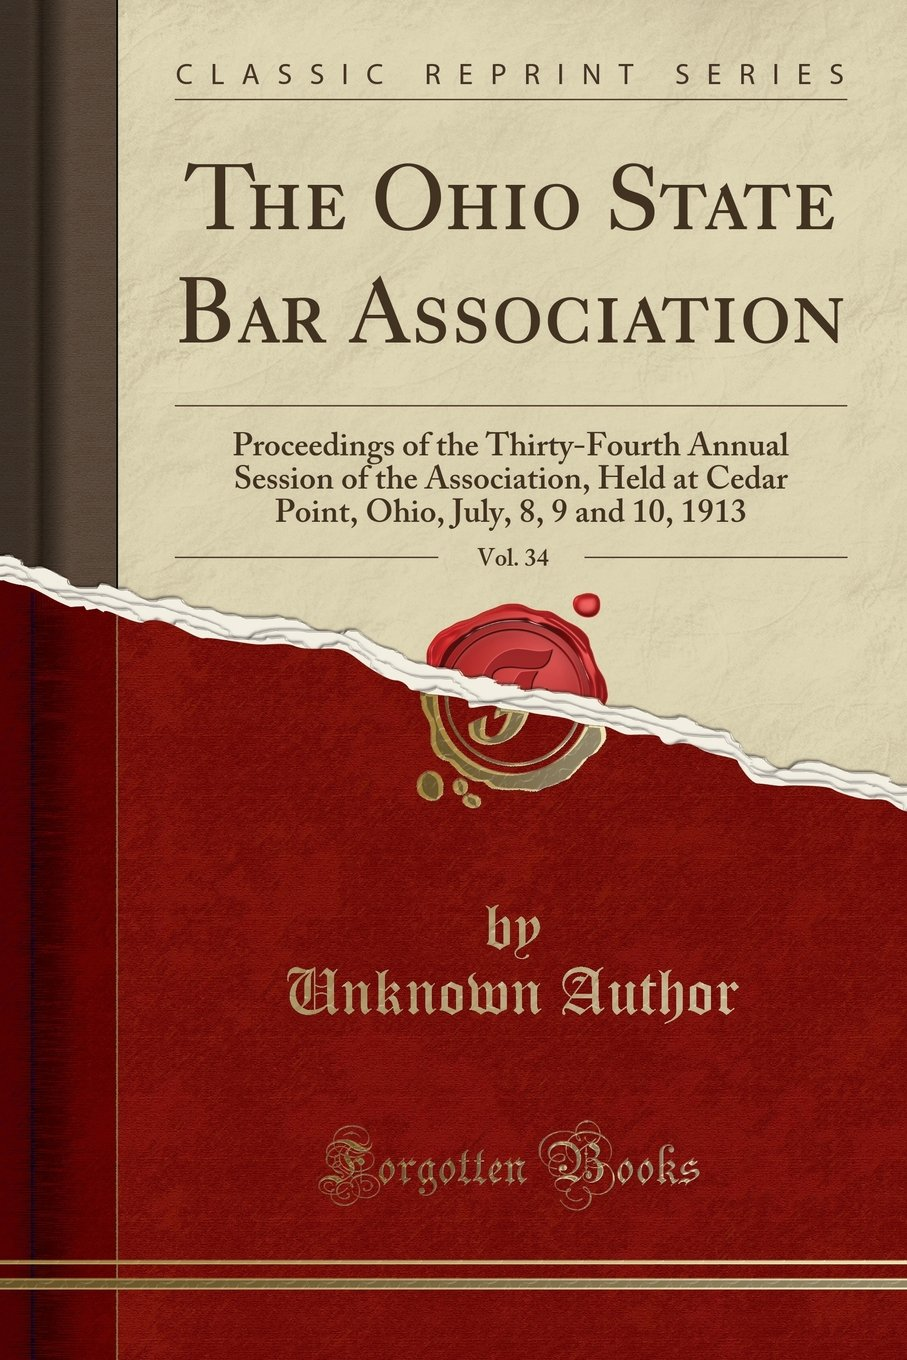 Download The Ohio State Bar Association, Vol. 34: Proceedings of the Thirty-Fourth Annual Session of the Association, Held at Cedar Point, Ohio, July, 8, 9 and 10, 1913 (Classic Reprint) PDF